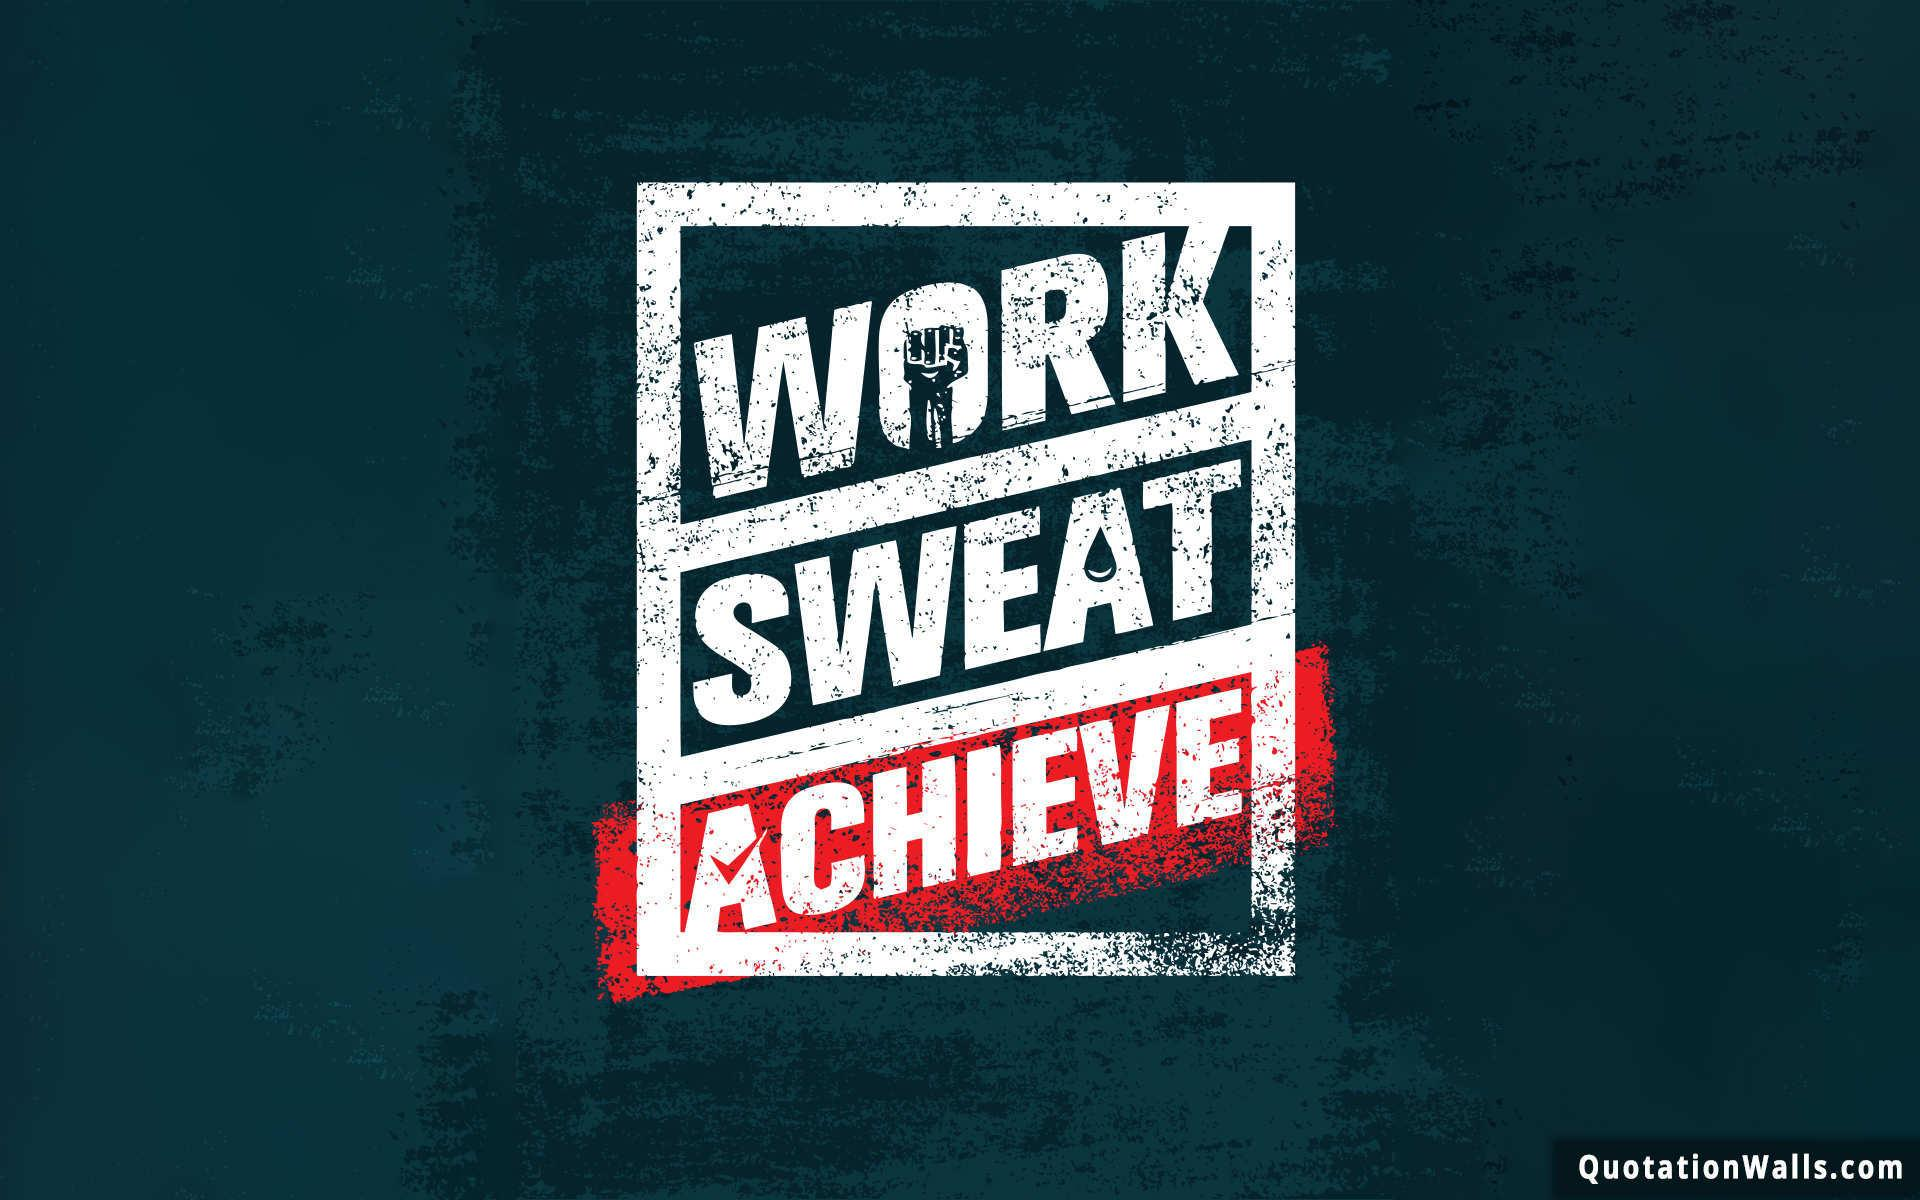 Attractive Work Sweat Achieve Motivational Wallpaper For Desktop   QuotationWalls